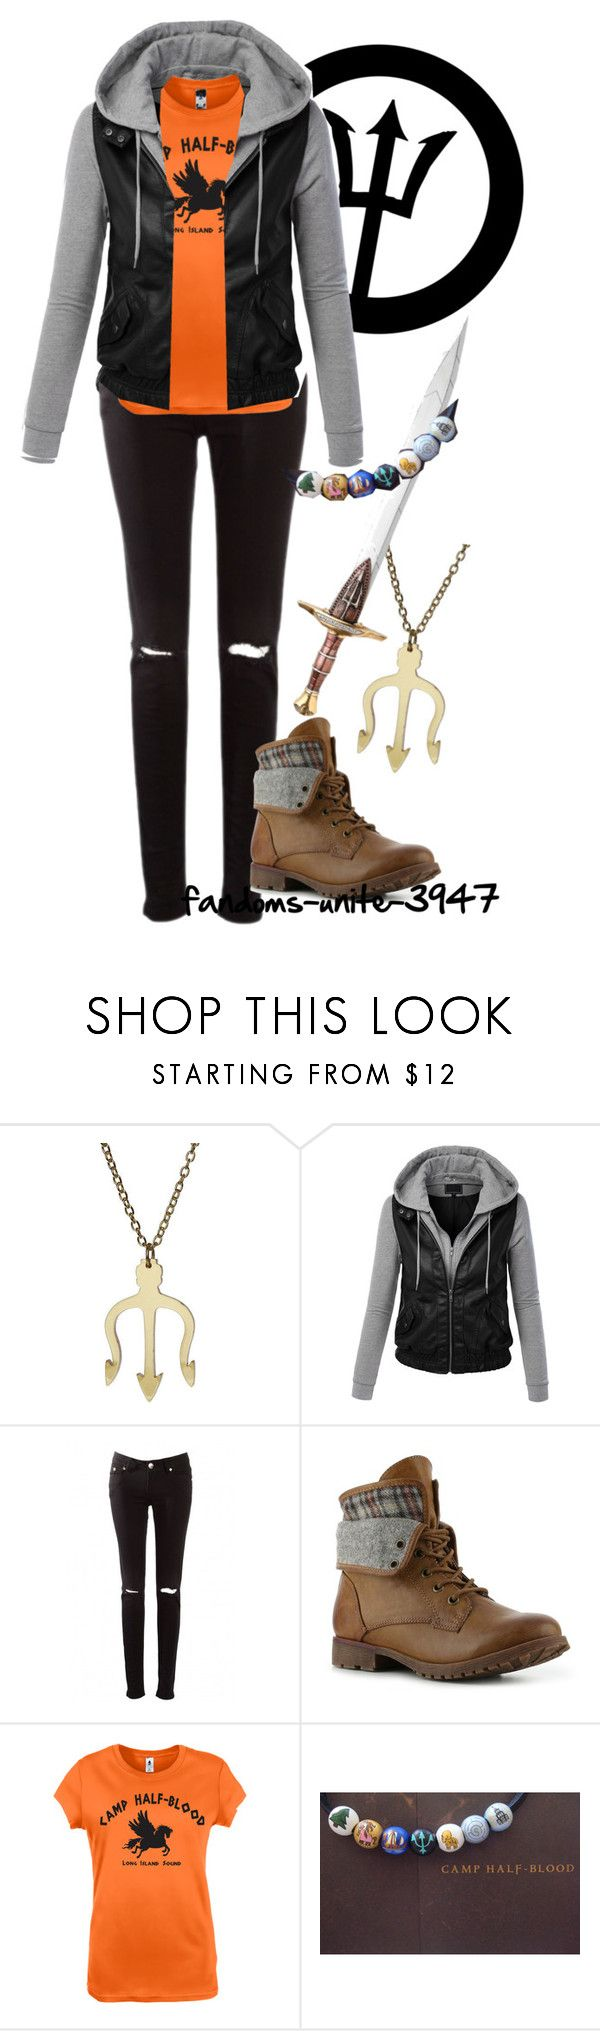 """DIY Halloween Costumes: Percy Jackson"" by fandoms-unite-3947 ❤ liked on Polyvore featuring LE3NO and Rock & Candy"